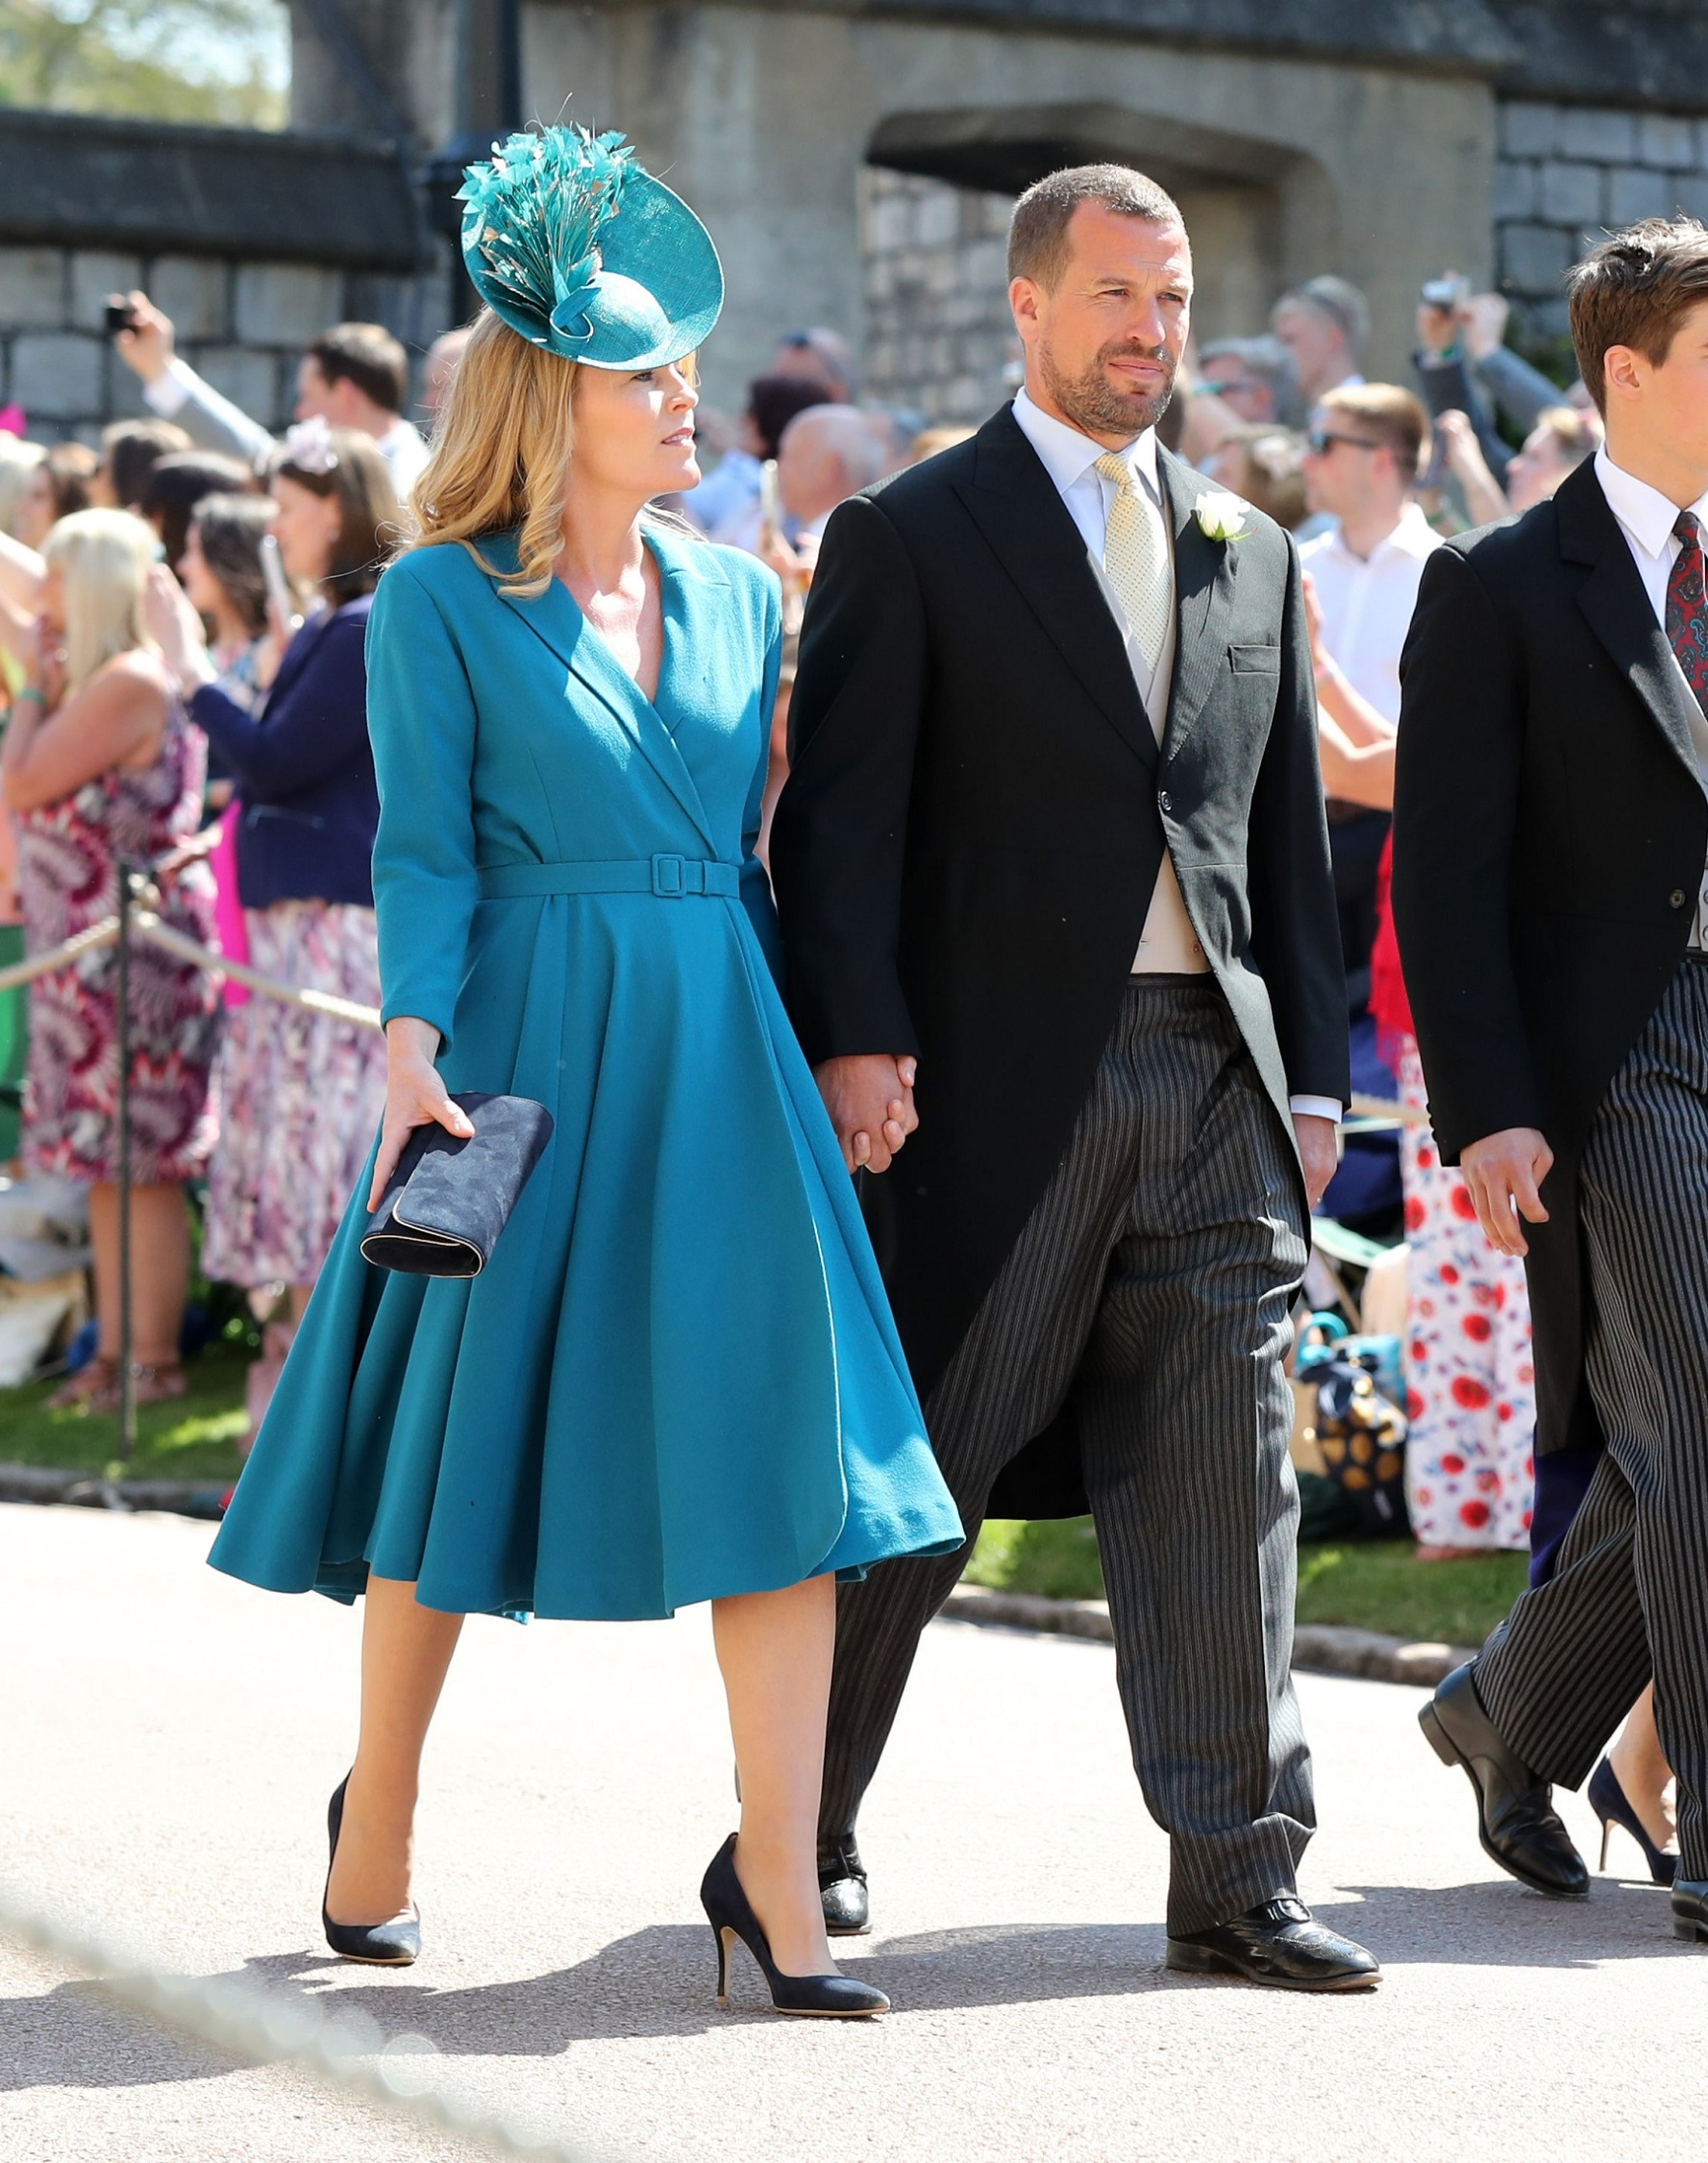 WINDSOR, UNITED KINGDOM - MAY 19:  Peter Phillips and wife Autumn Phillips arrive at St George's Chapel at Windsor Castle before the wedding of Prince Harry to Meghan Markle on May 19, 2018 in Windsor, England. (Photo by Gareth Fuller - WPA Pool/Getty Images)